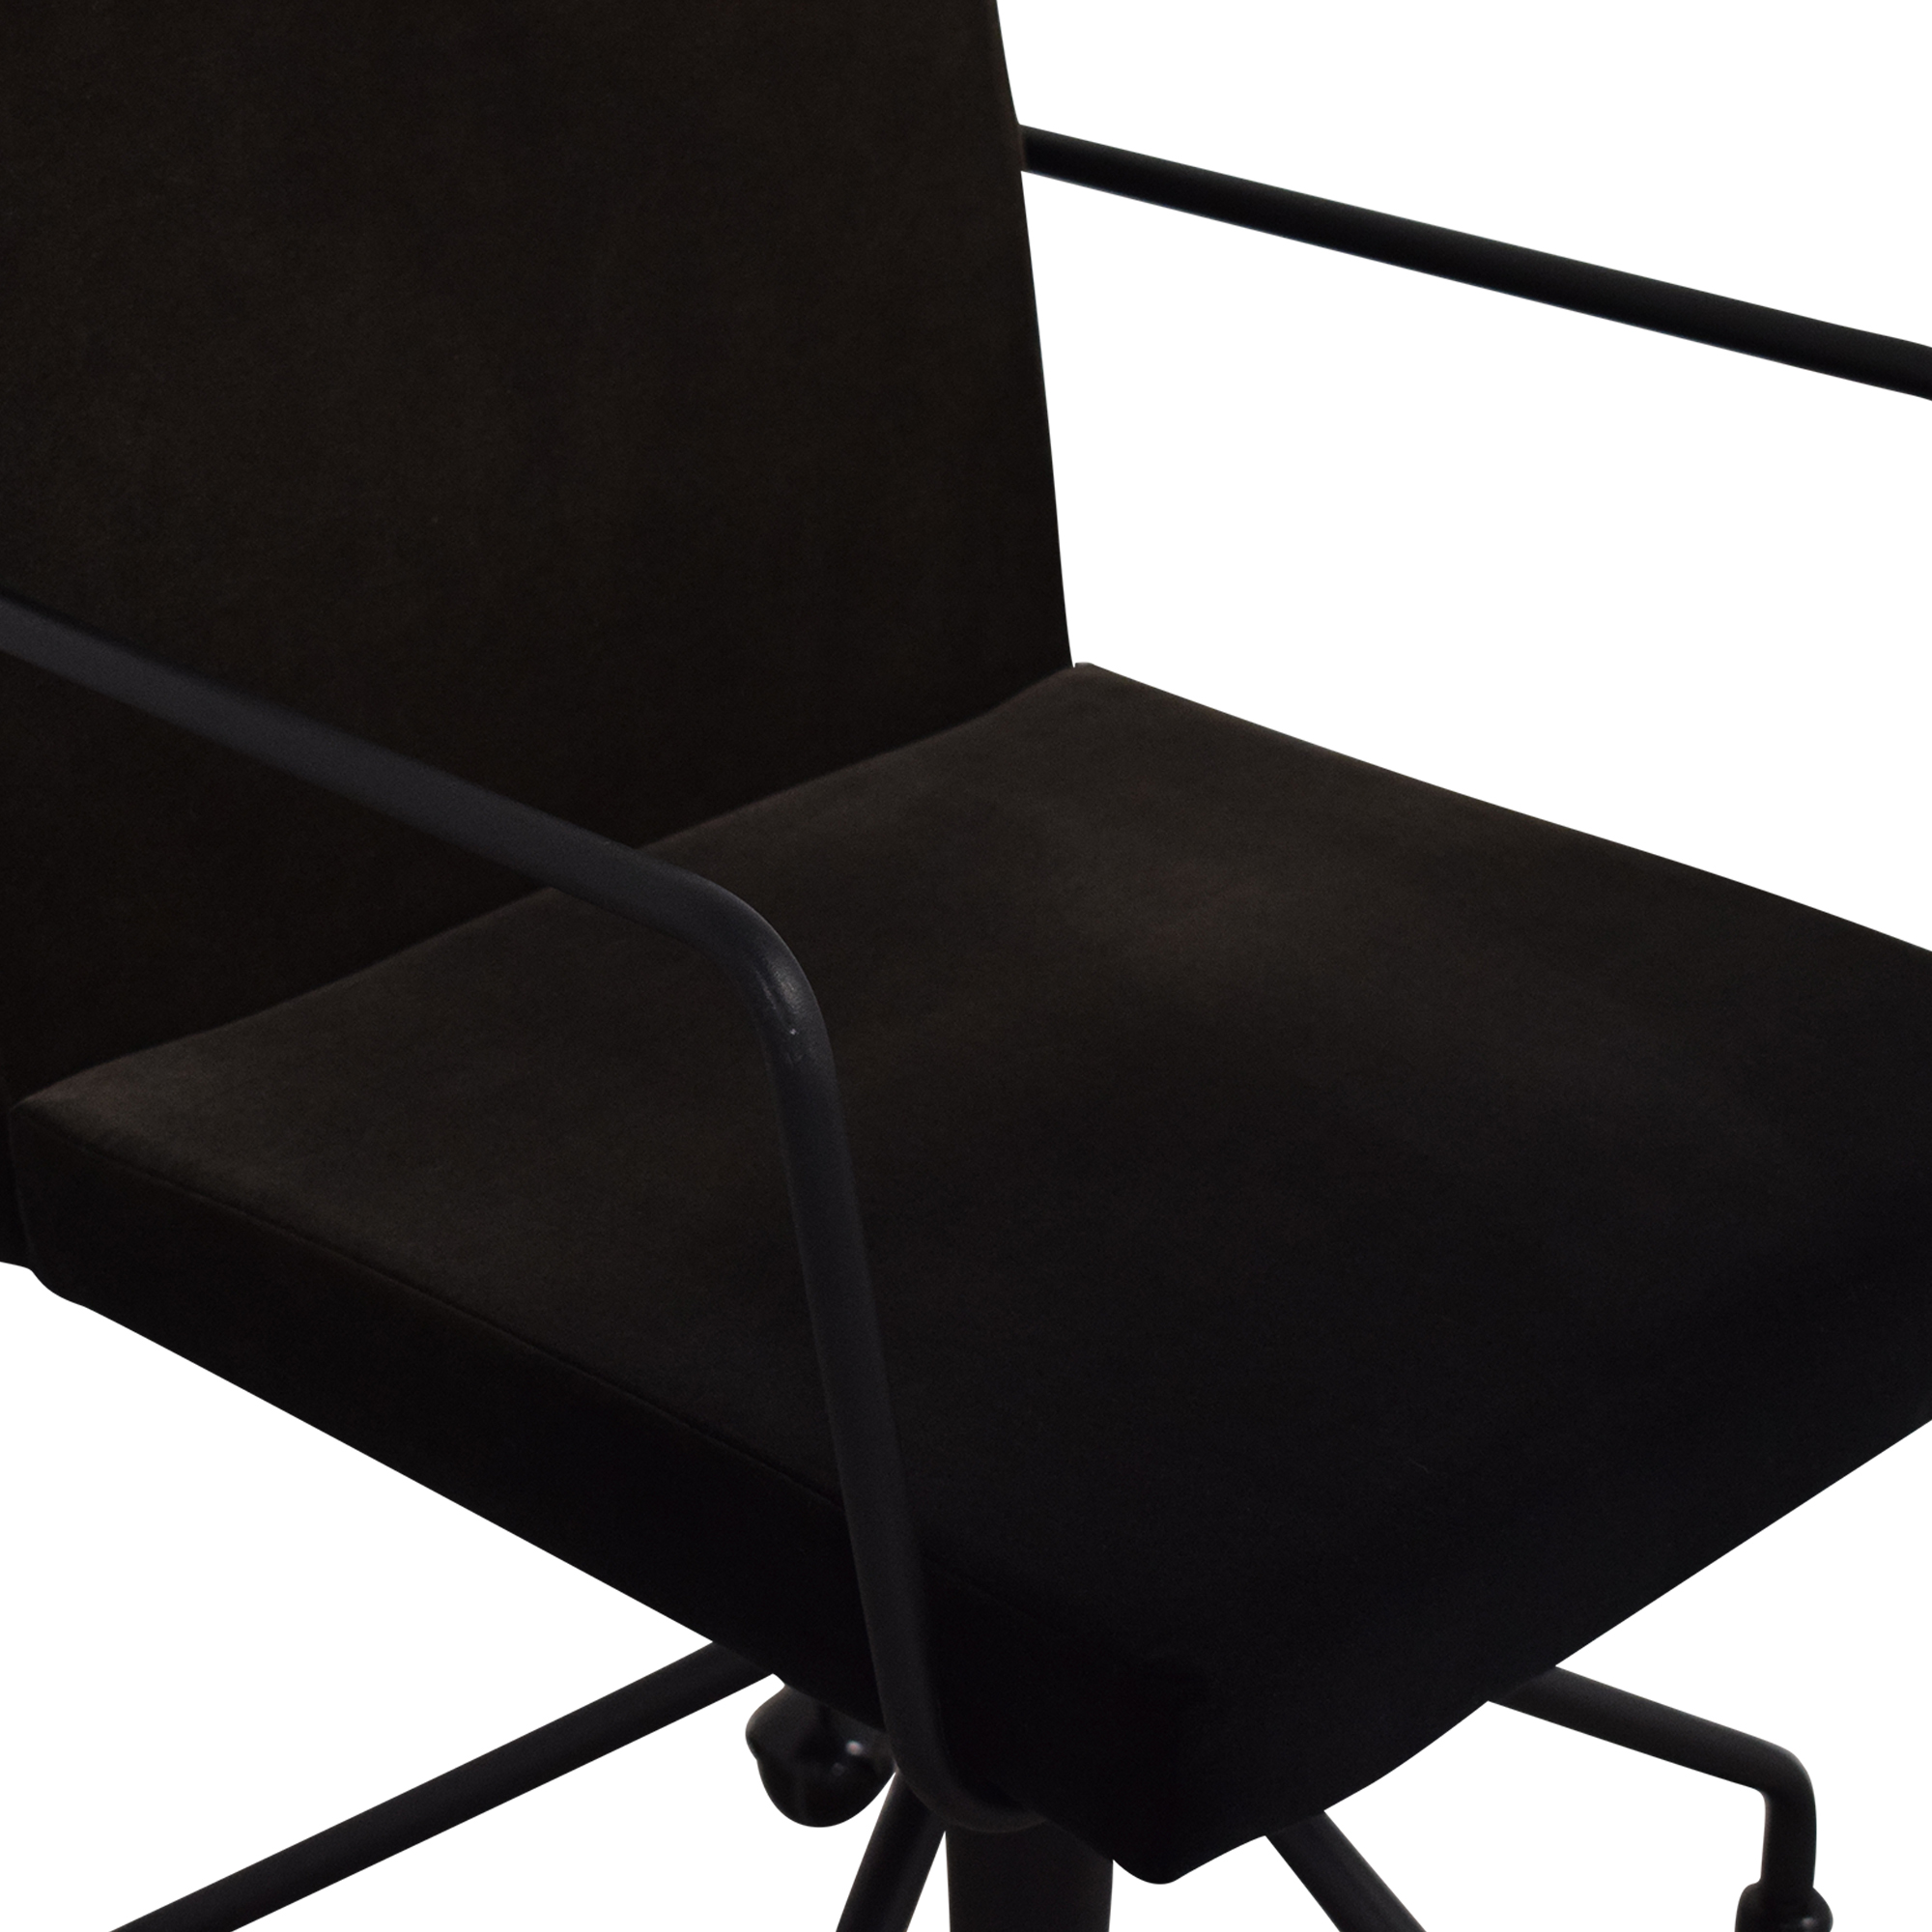 CB2 Rouka Home Office Chair / Home Office Chairs